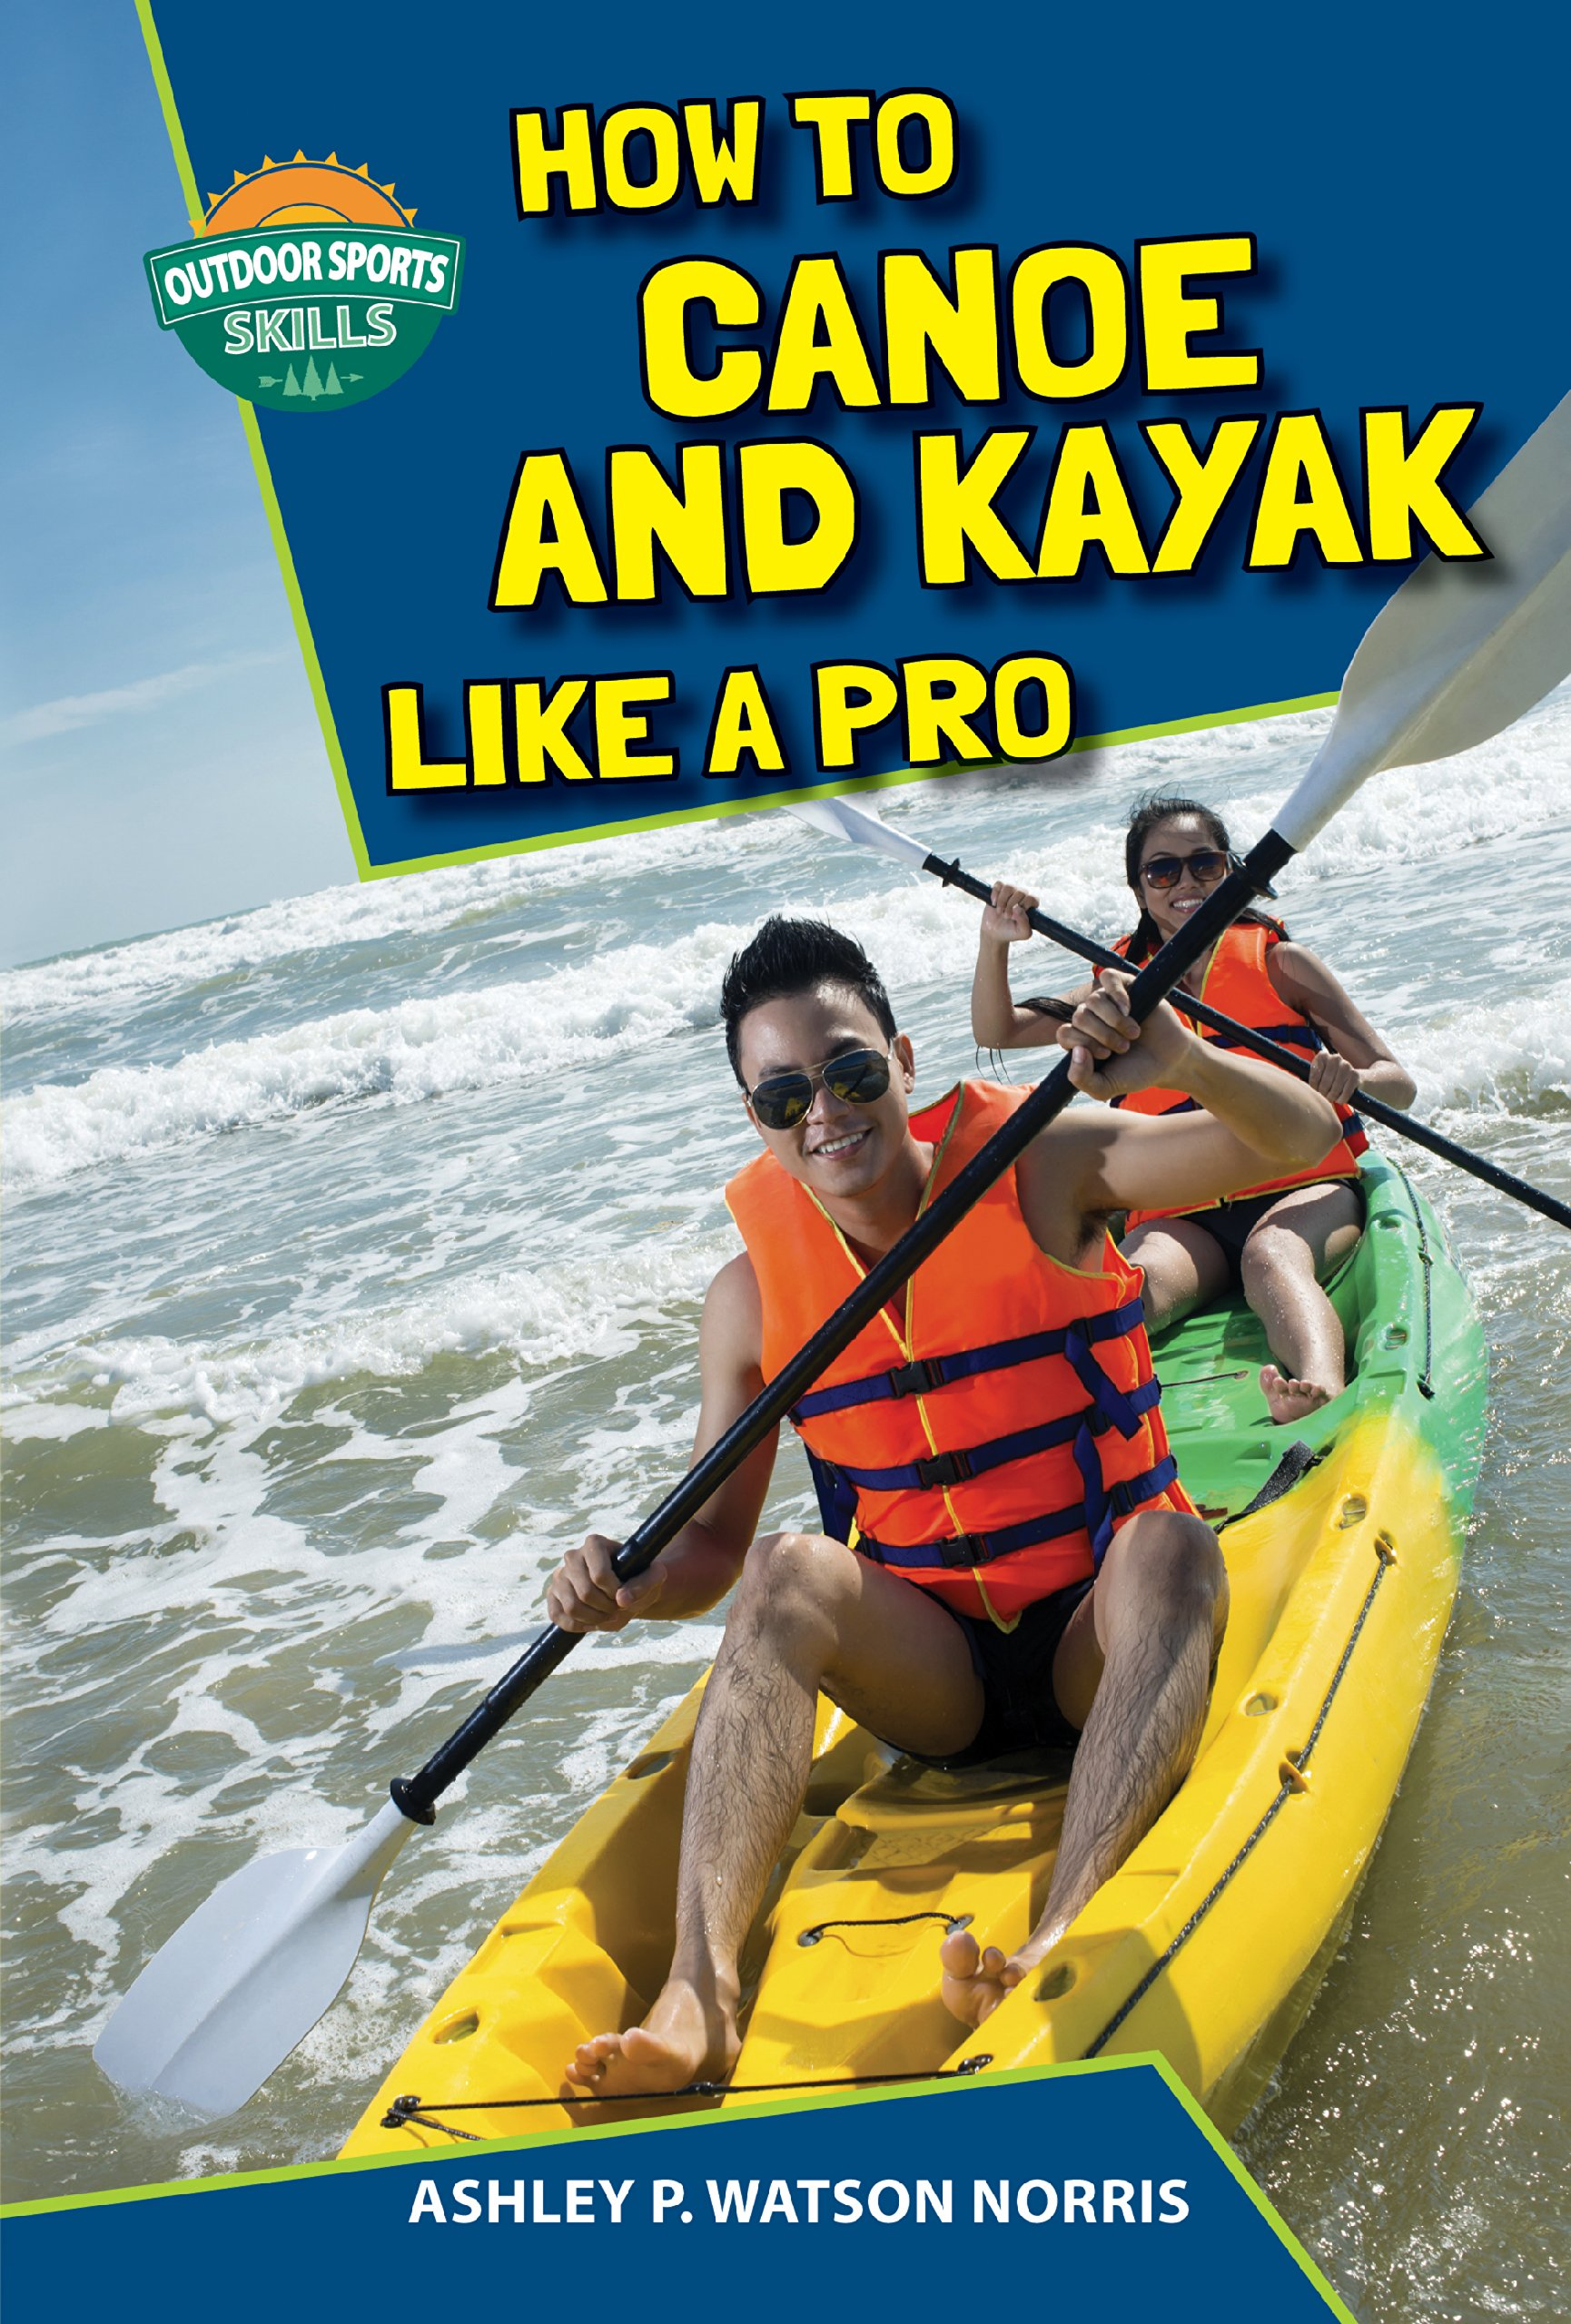 How to Canoe and Kayak Like a Pro (Outdoor Sports Skills) ebook